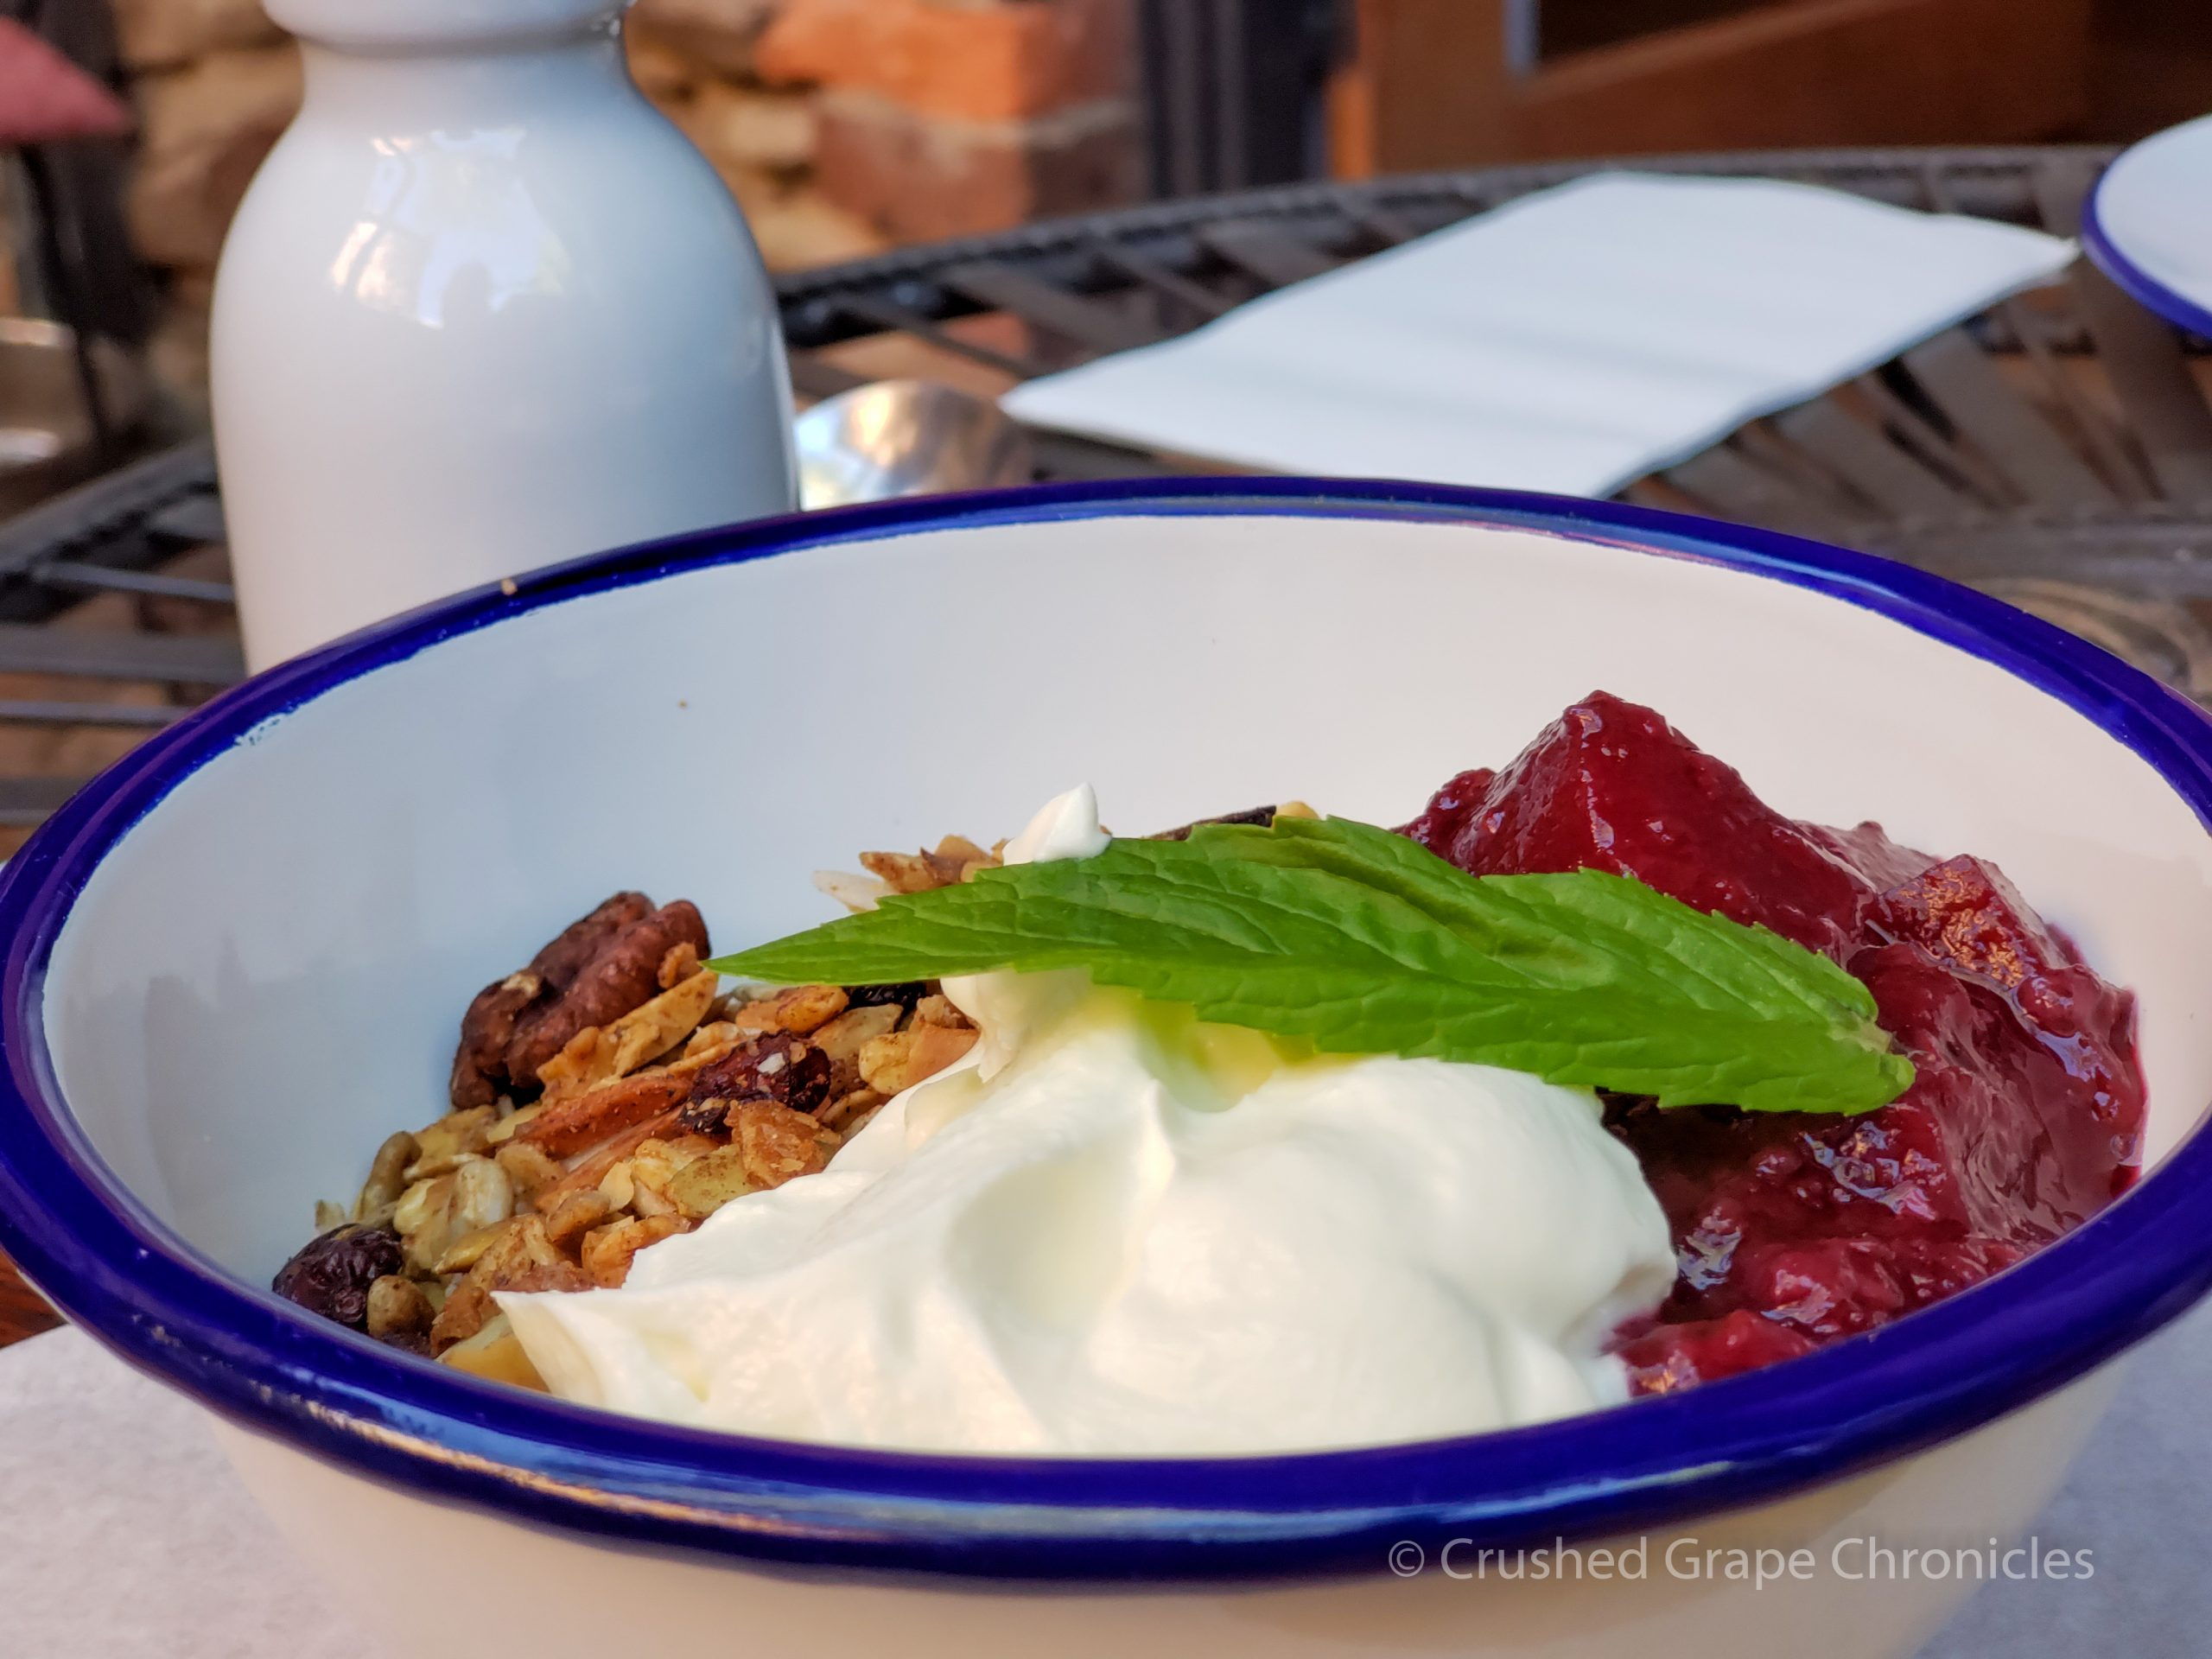 Beautiful, healthy and delicious, yogurt and granola at Alby + Esther's Mudgee